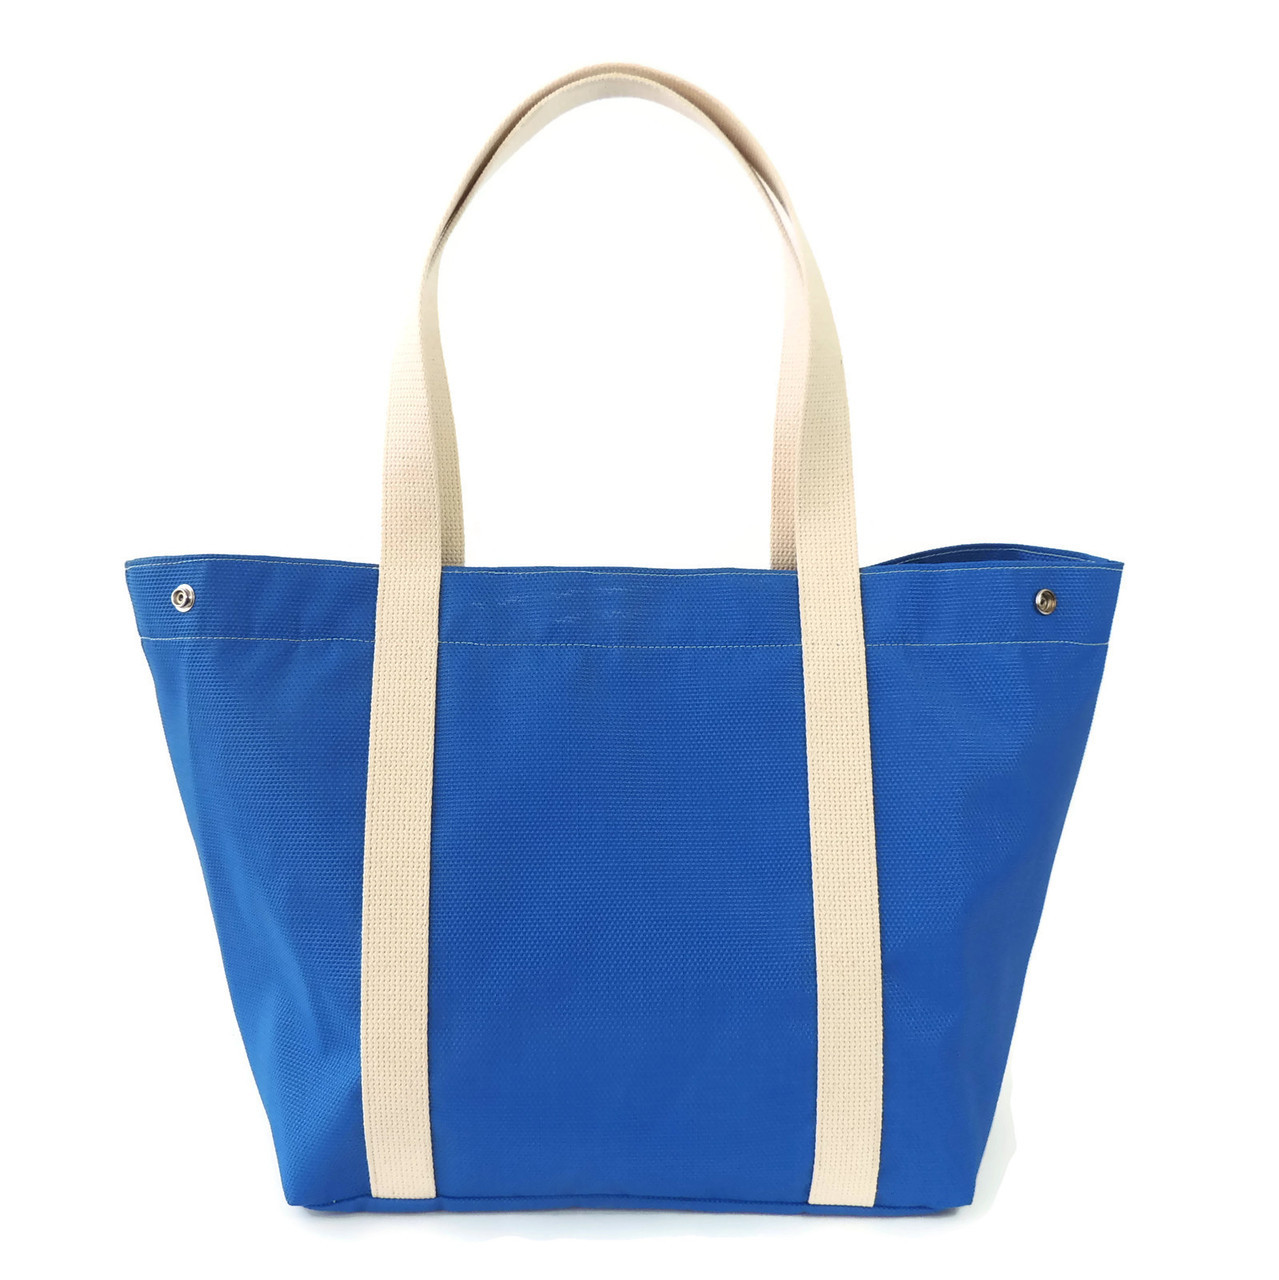 Beach Tote | Ocean Blue | Waterproof & Stylish | Spicer Bags